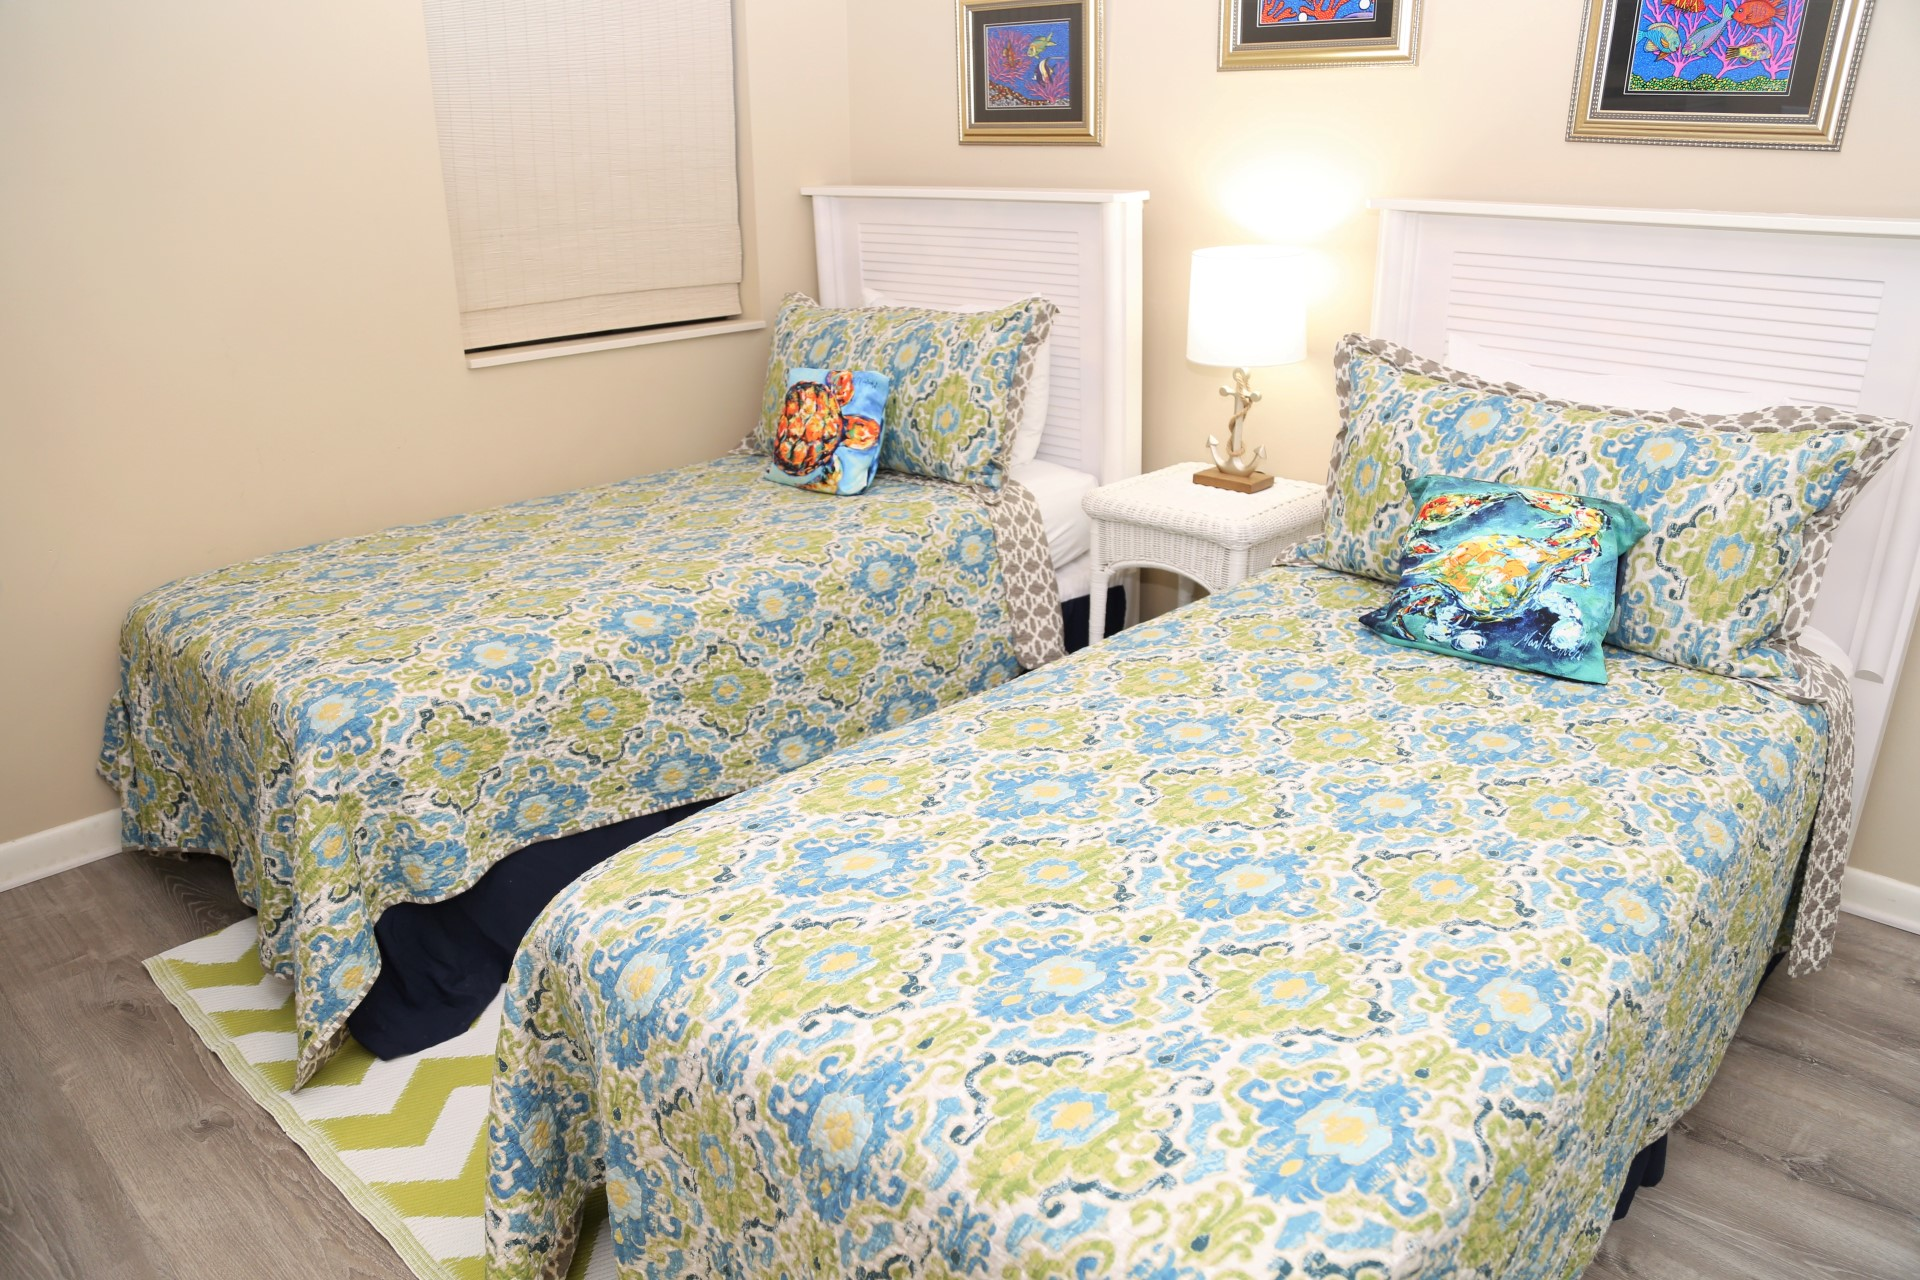 The second bedroom includes two Twin-sized beds and private